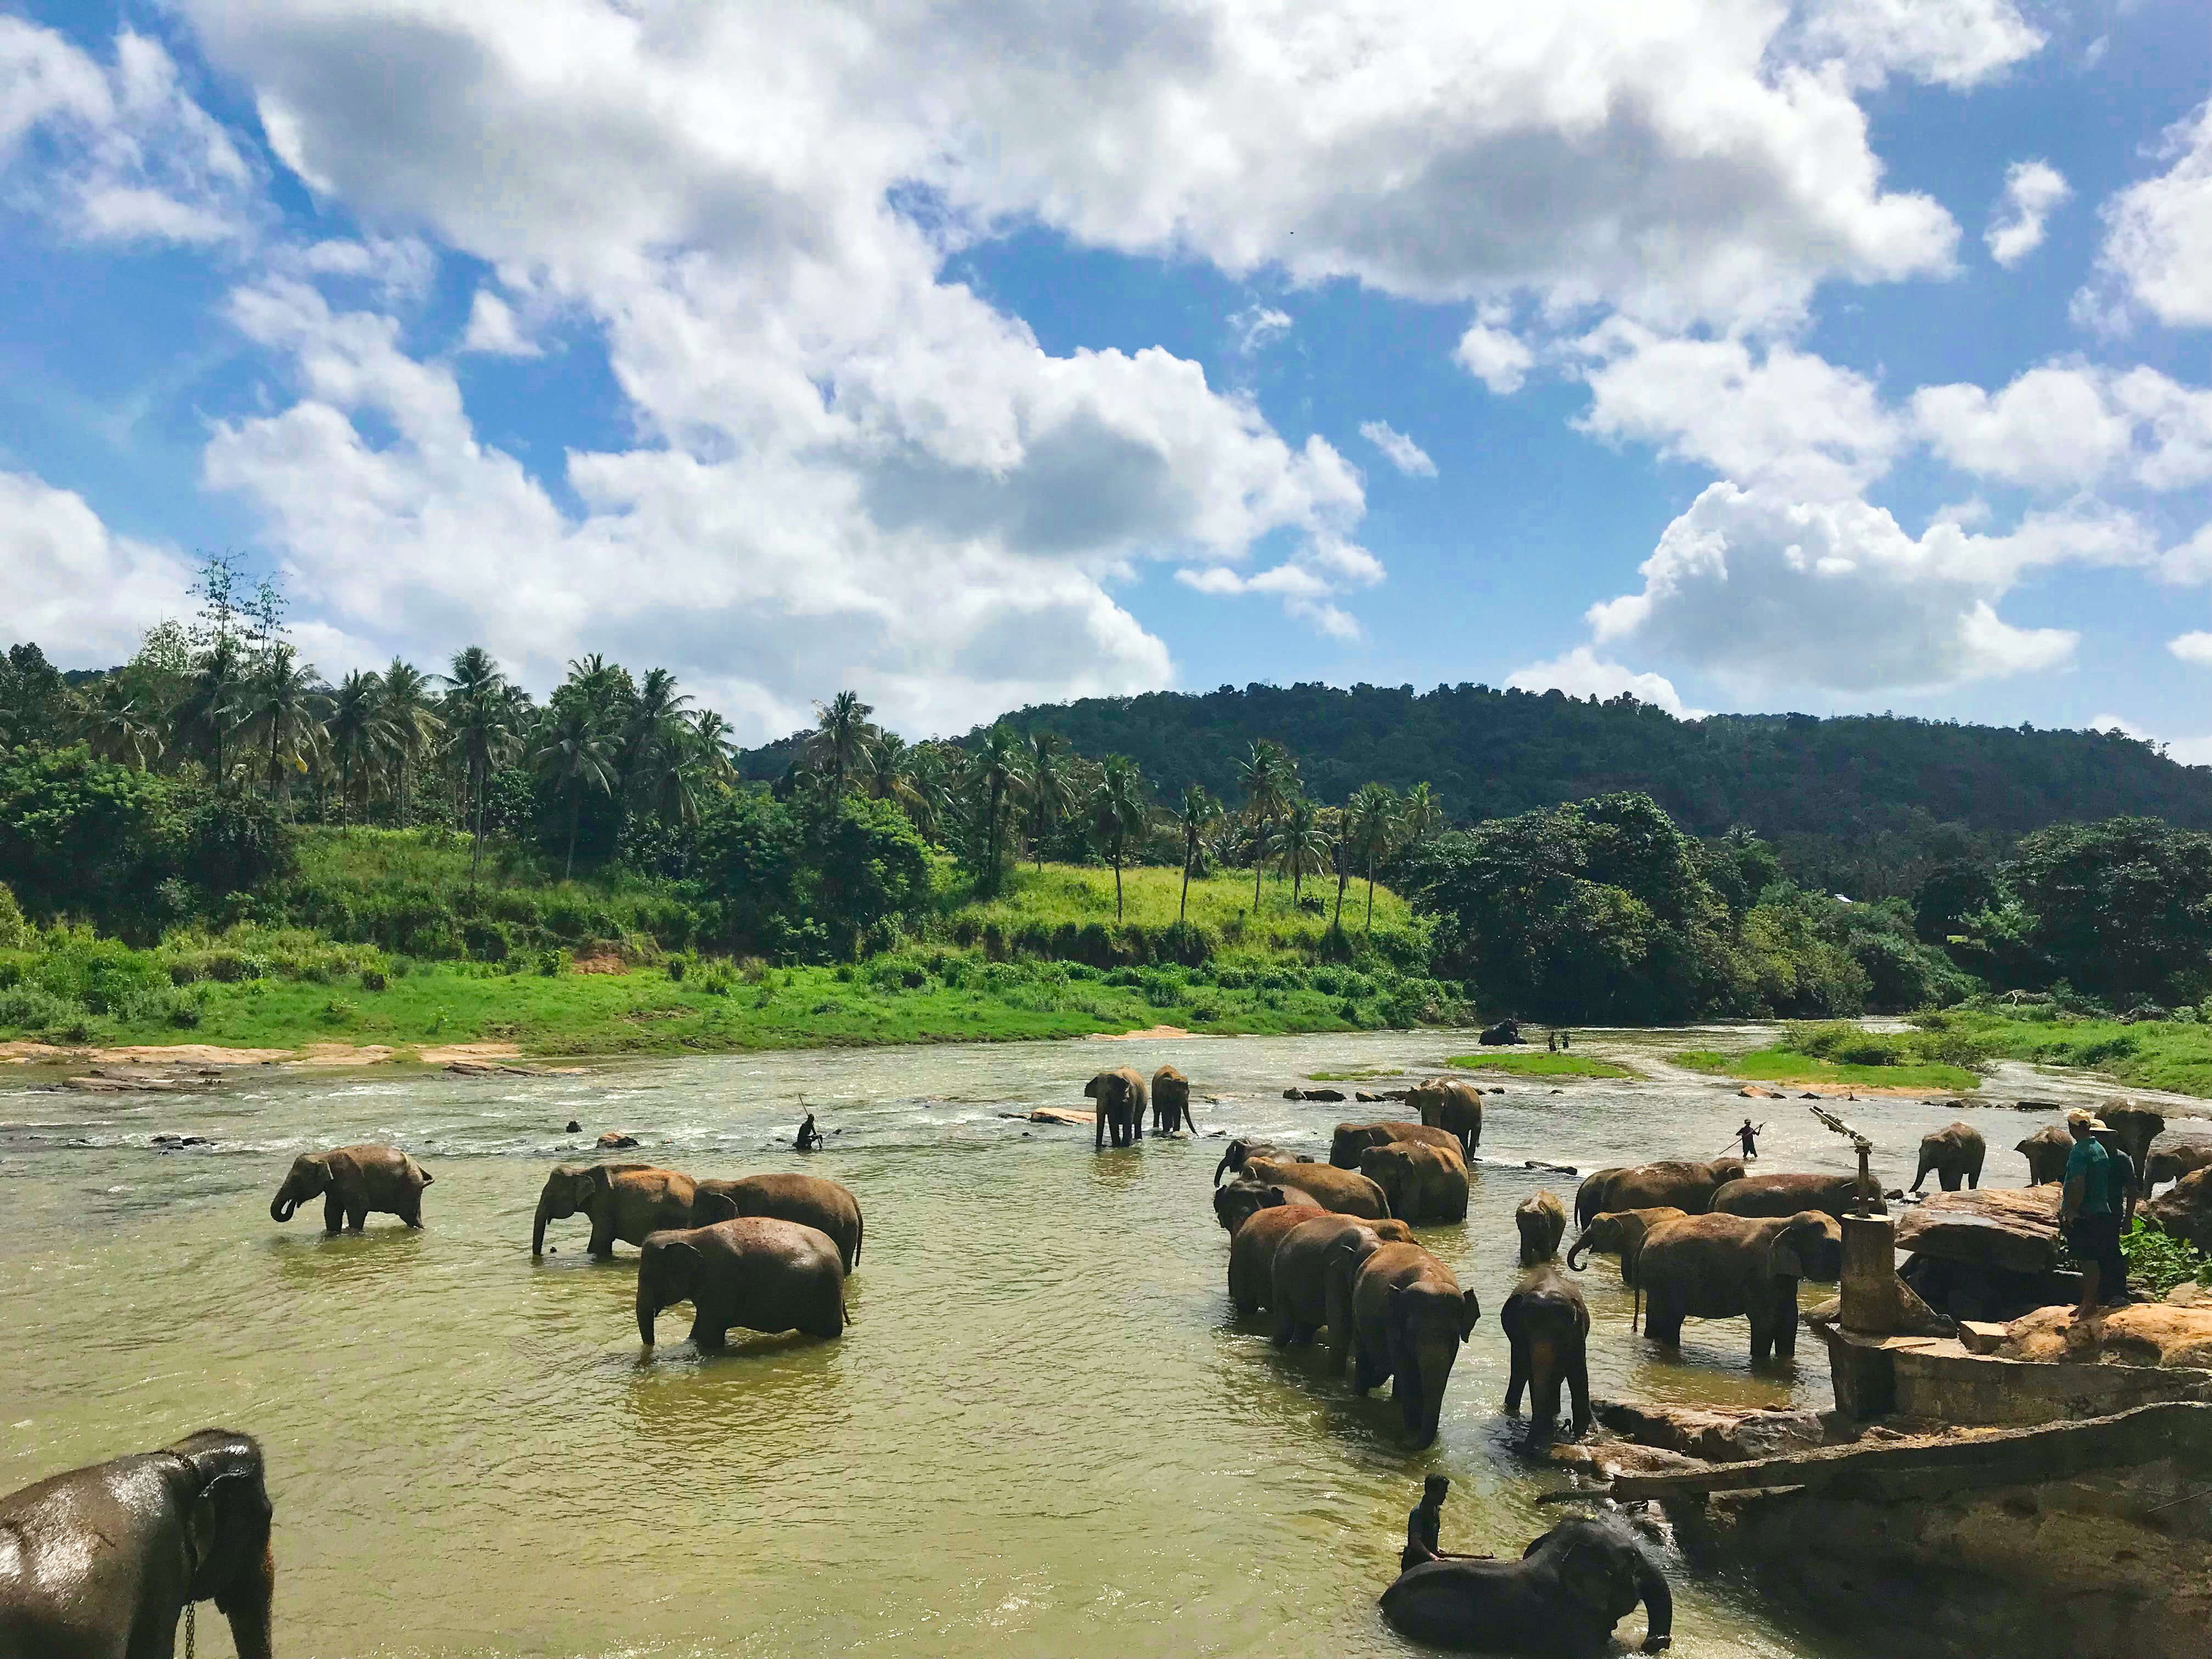 brown elephants on body of water under blue cloudy sky during daytime